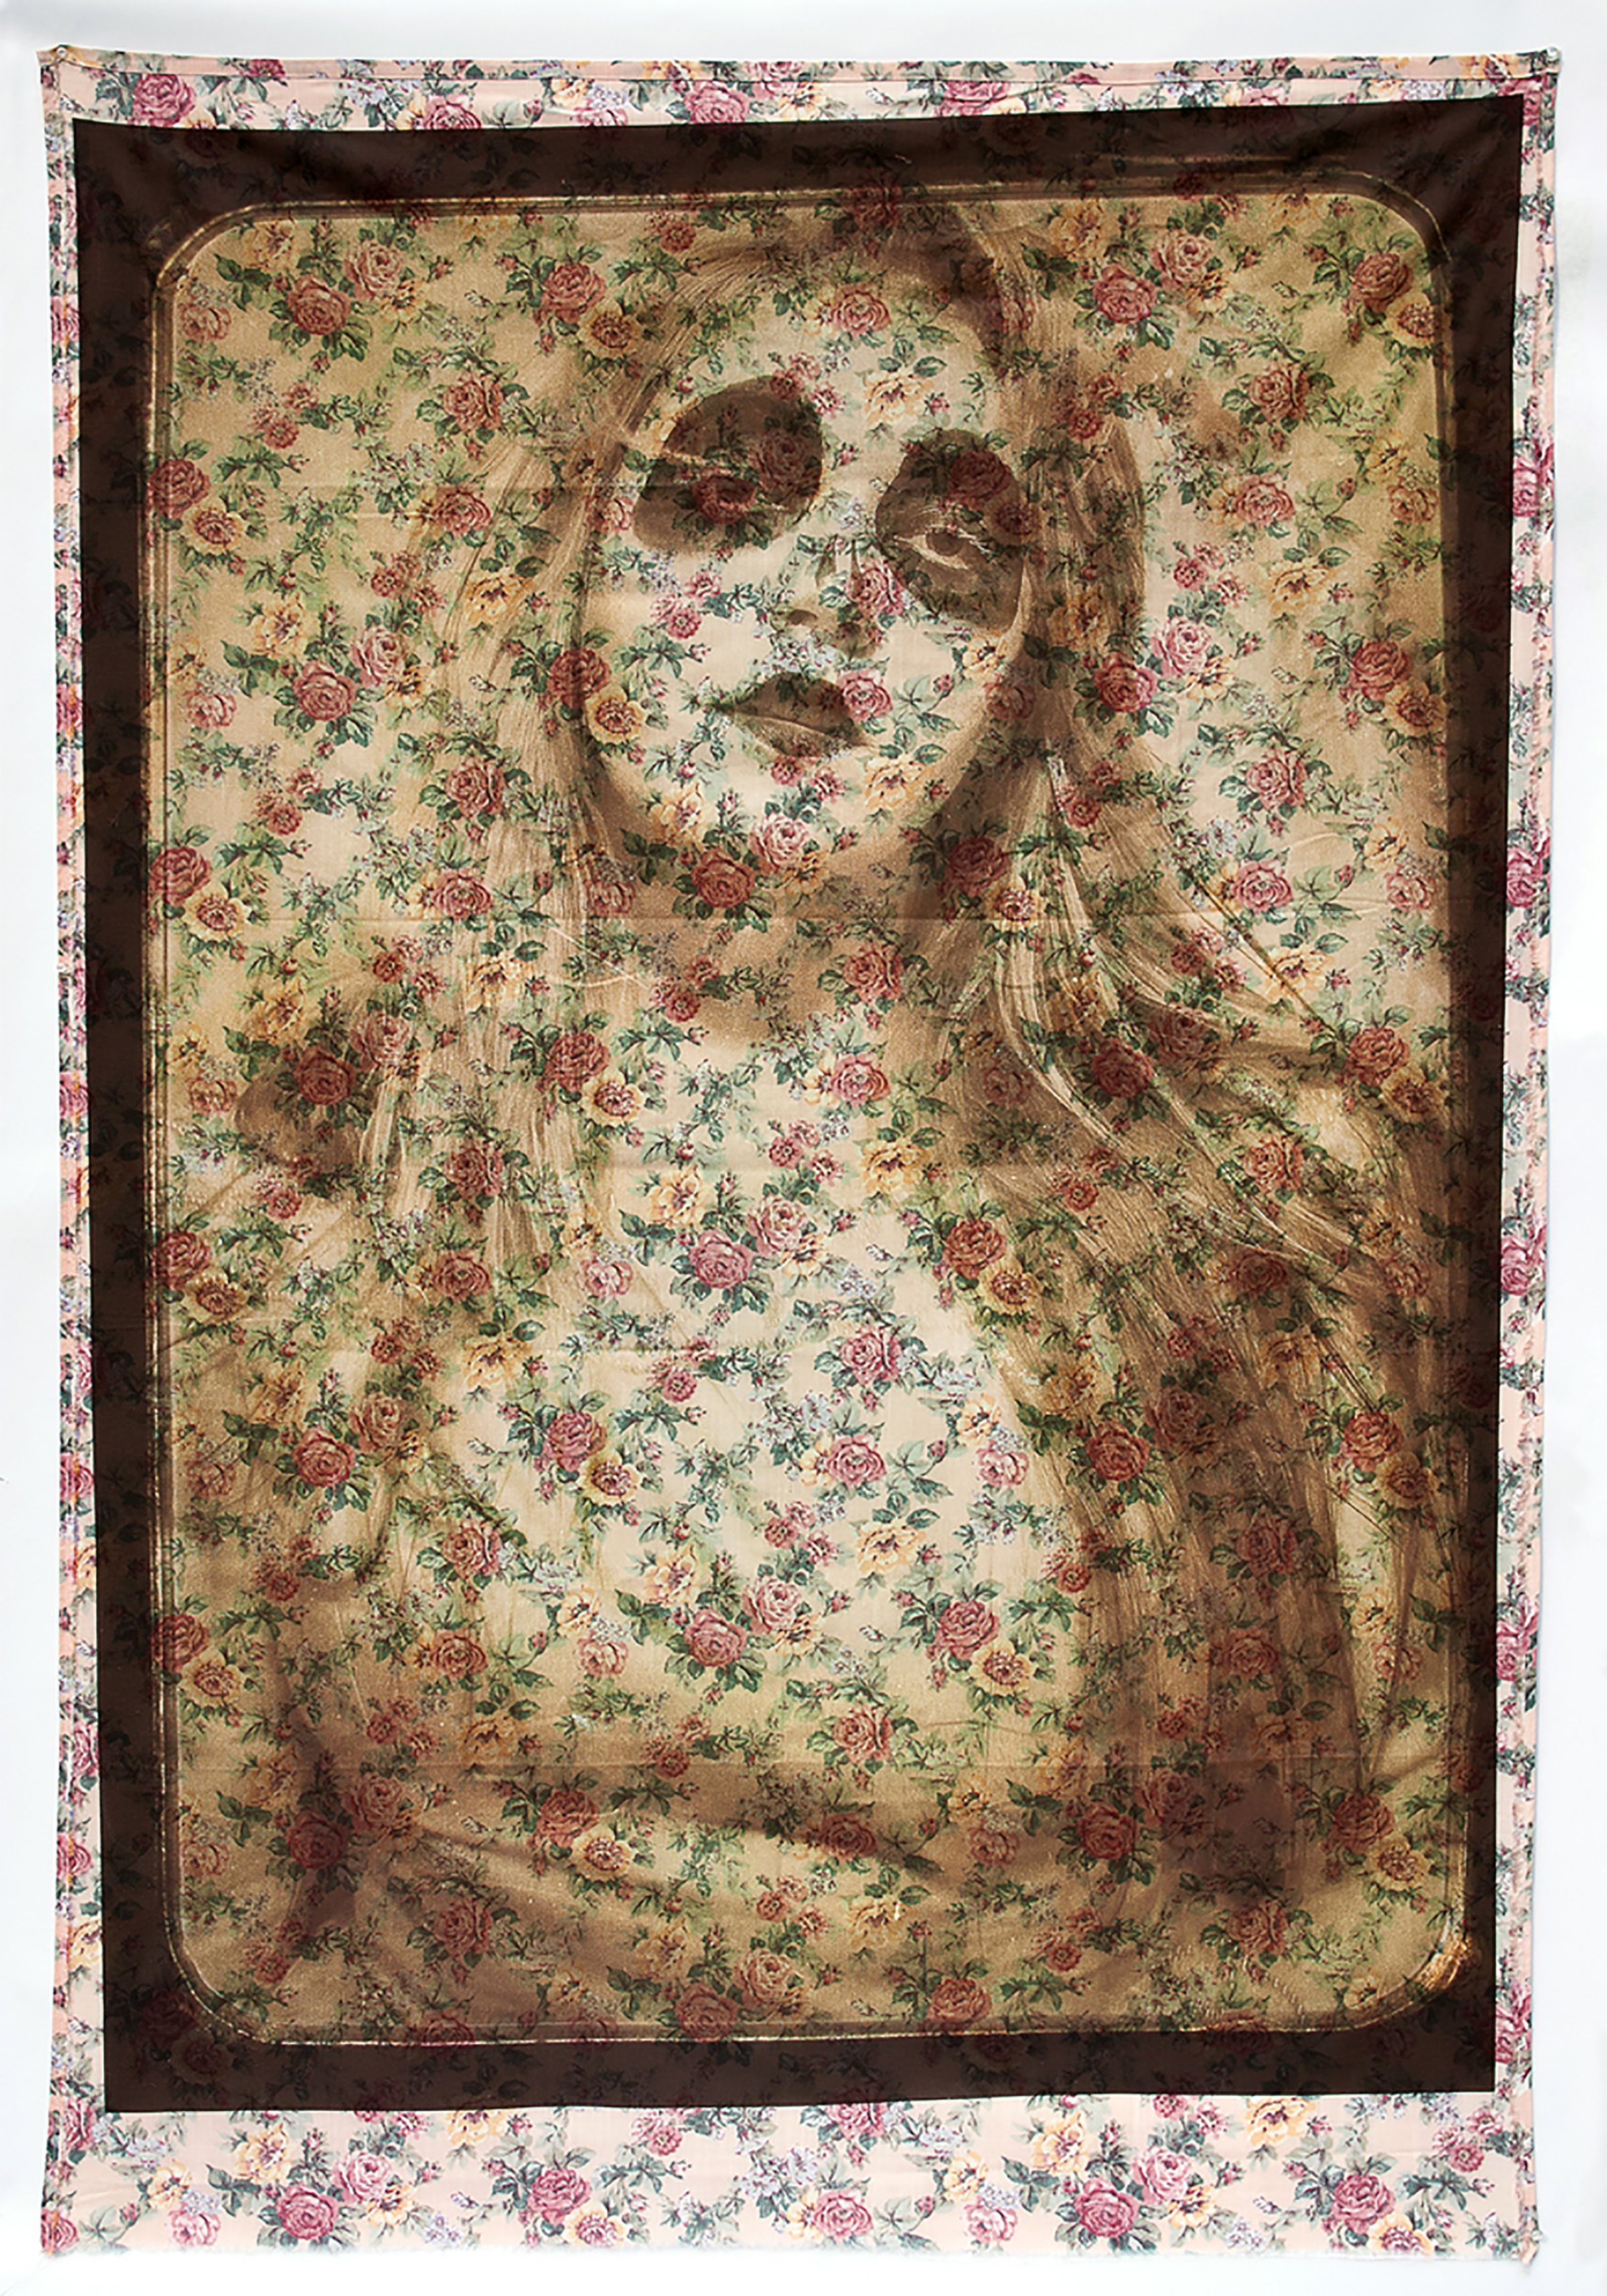 "'Kess'(2013) Digital laser print on a secondhand bed sheet, 68"" x 44"""